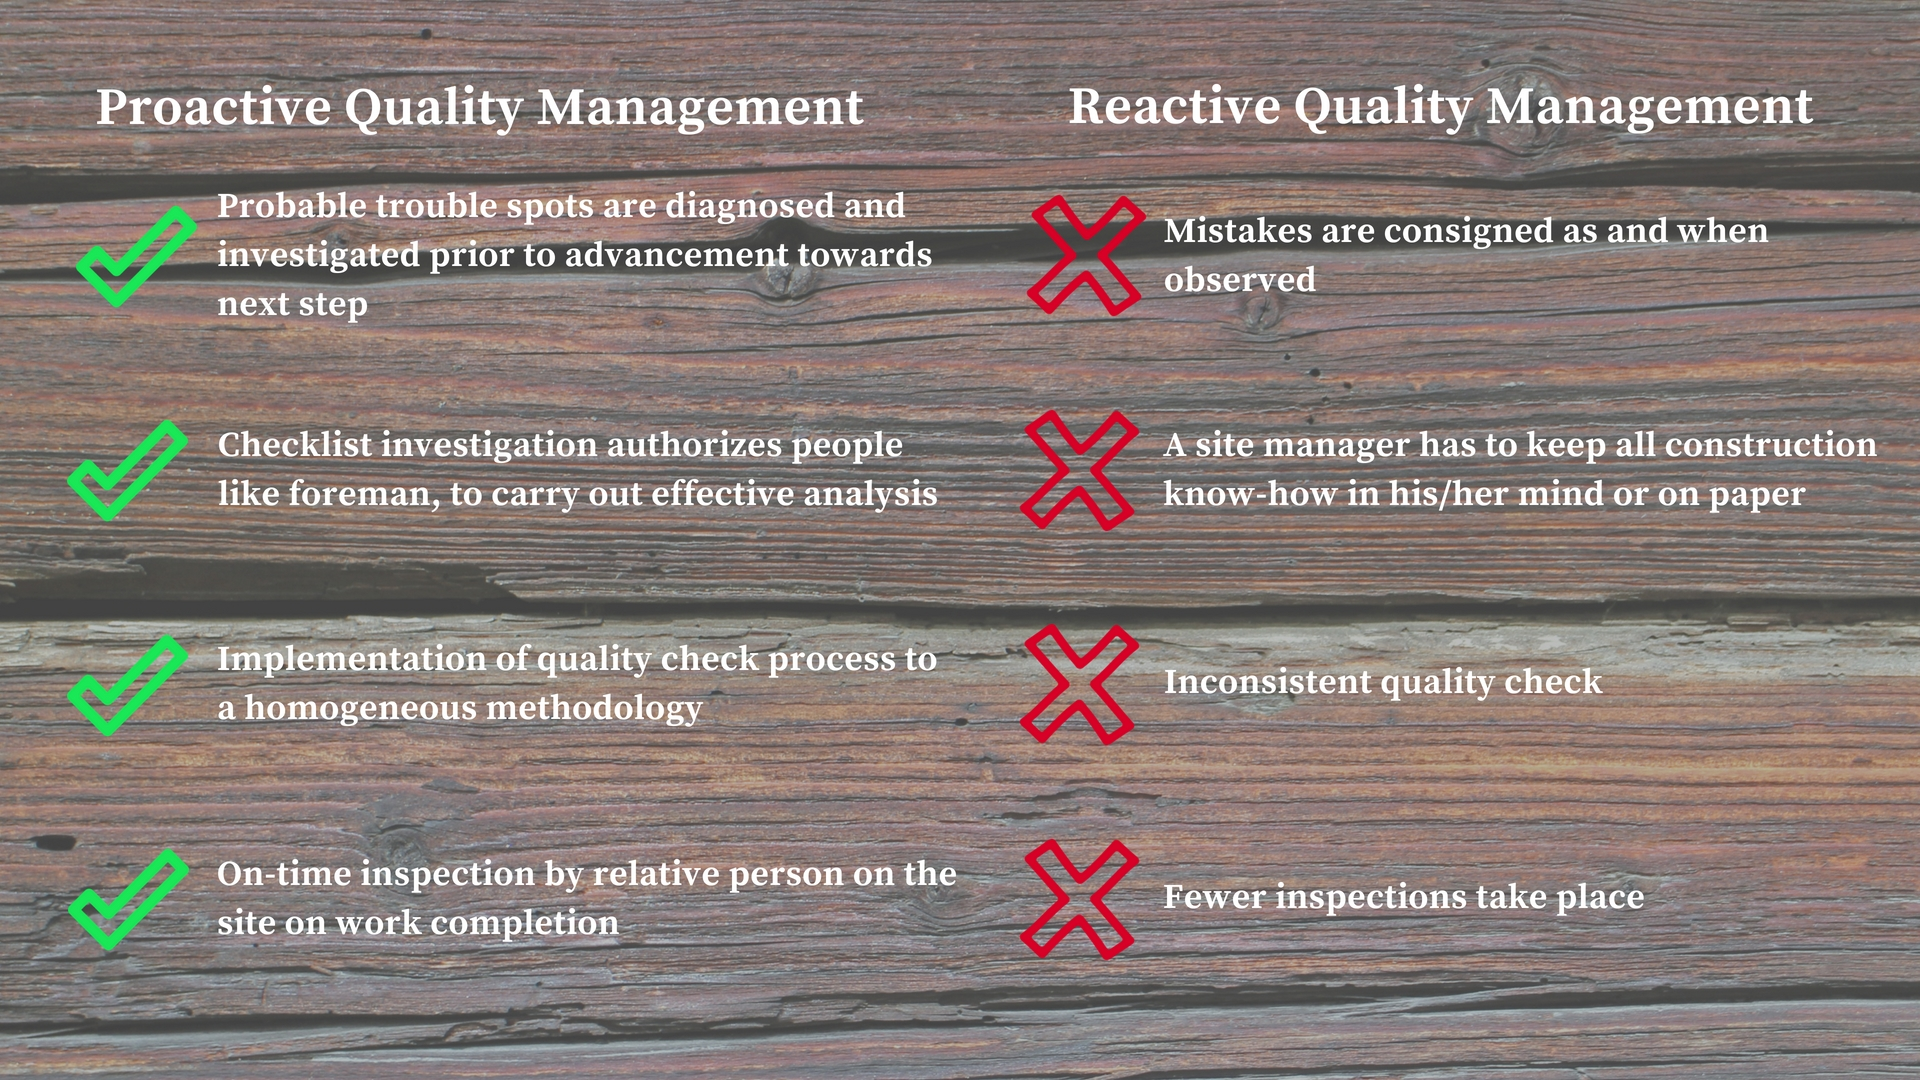 Proactive vs Reactive Quality Management